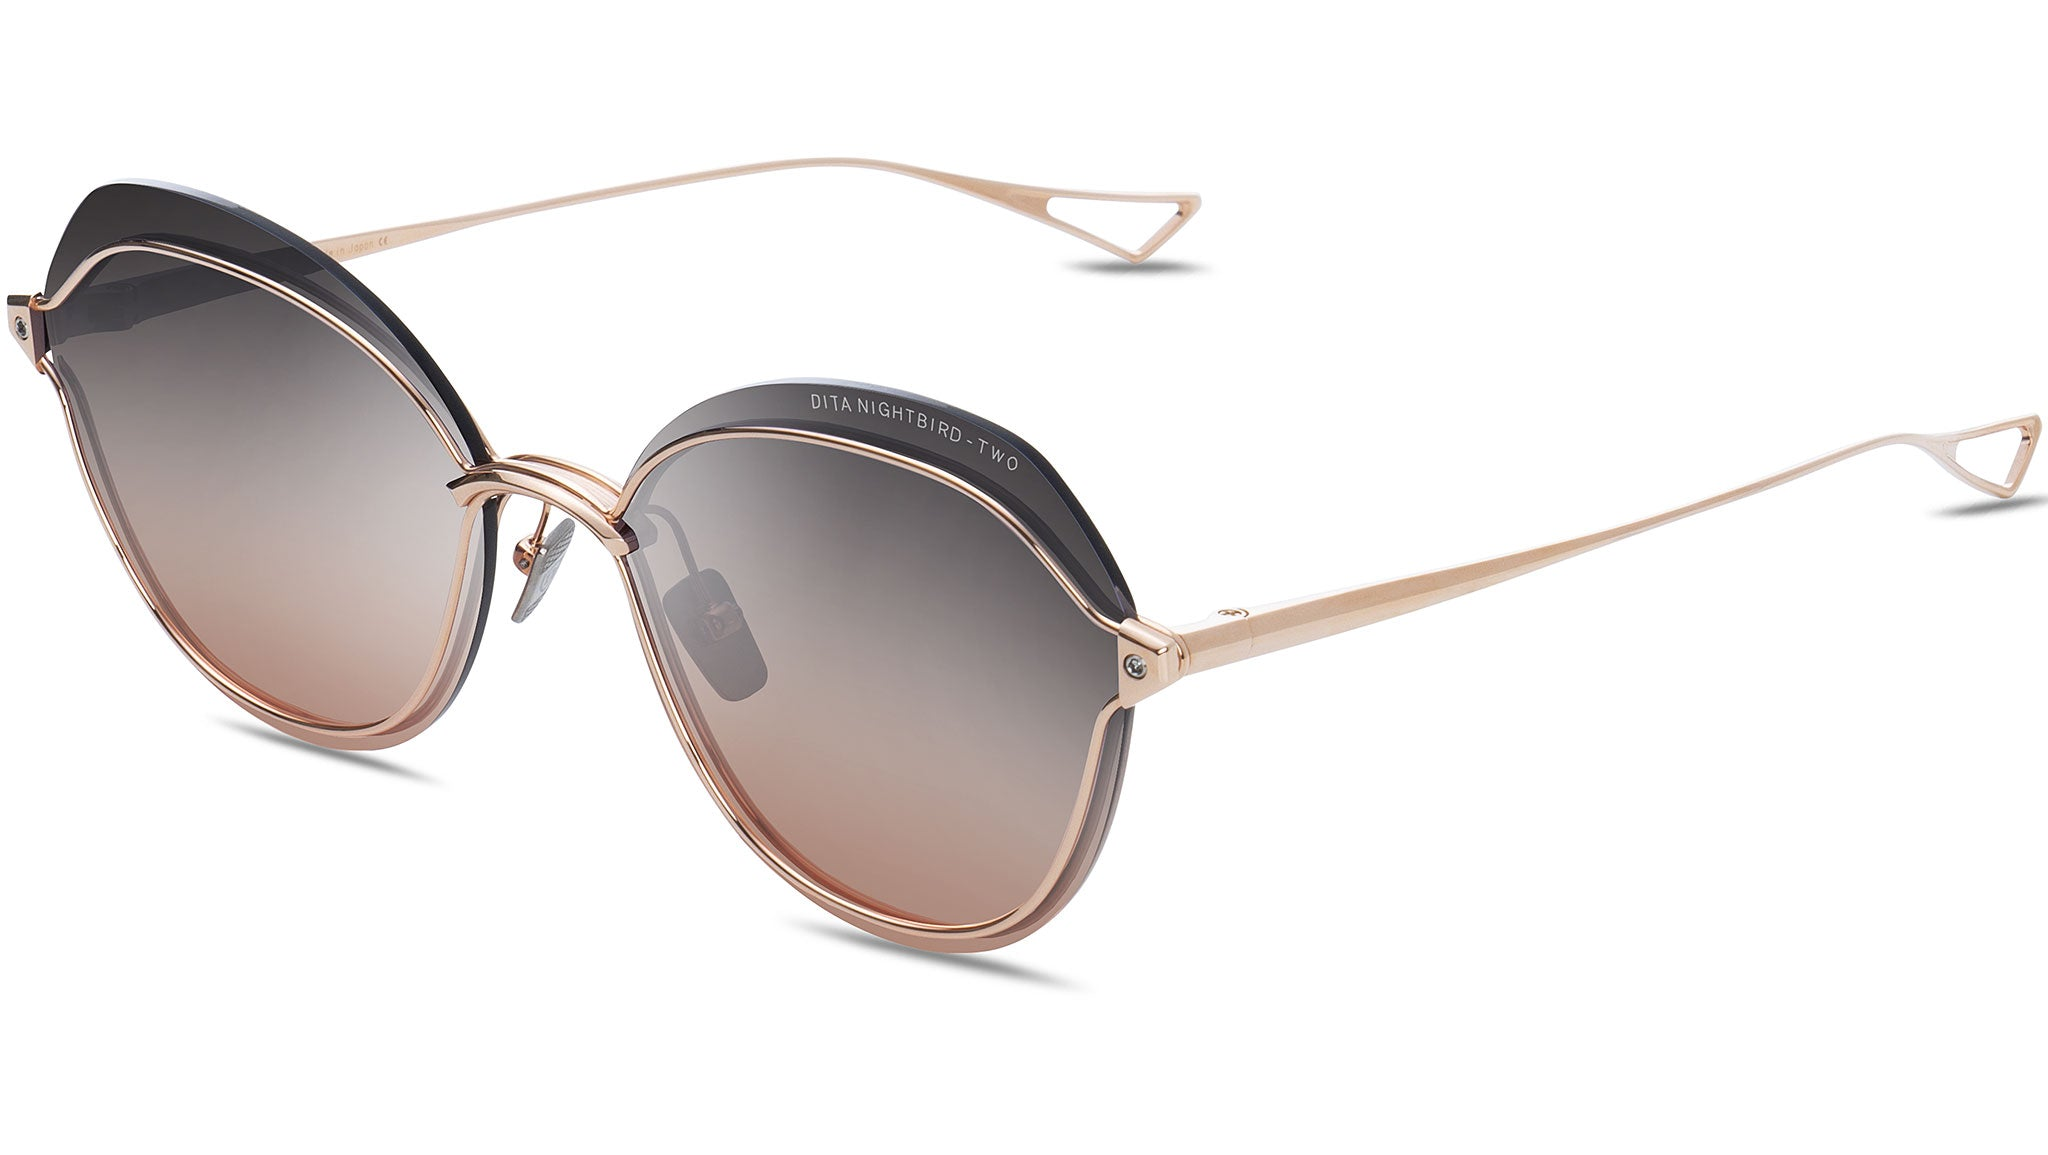 Nightbird-Two DTS 519 02 rose gold